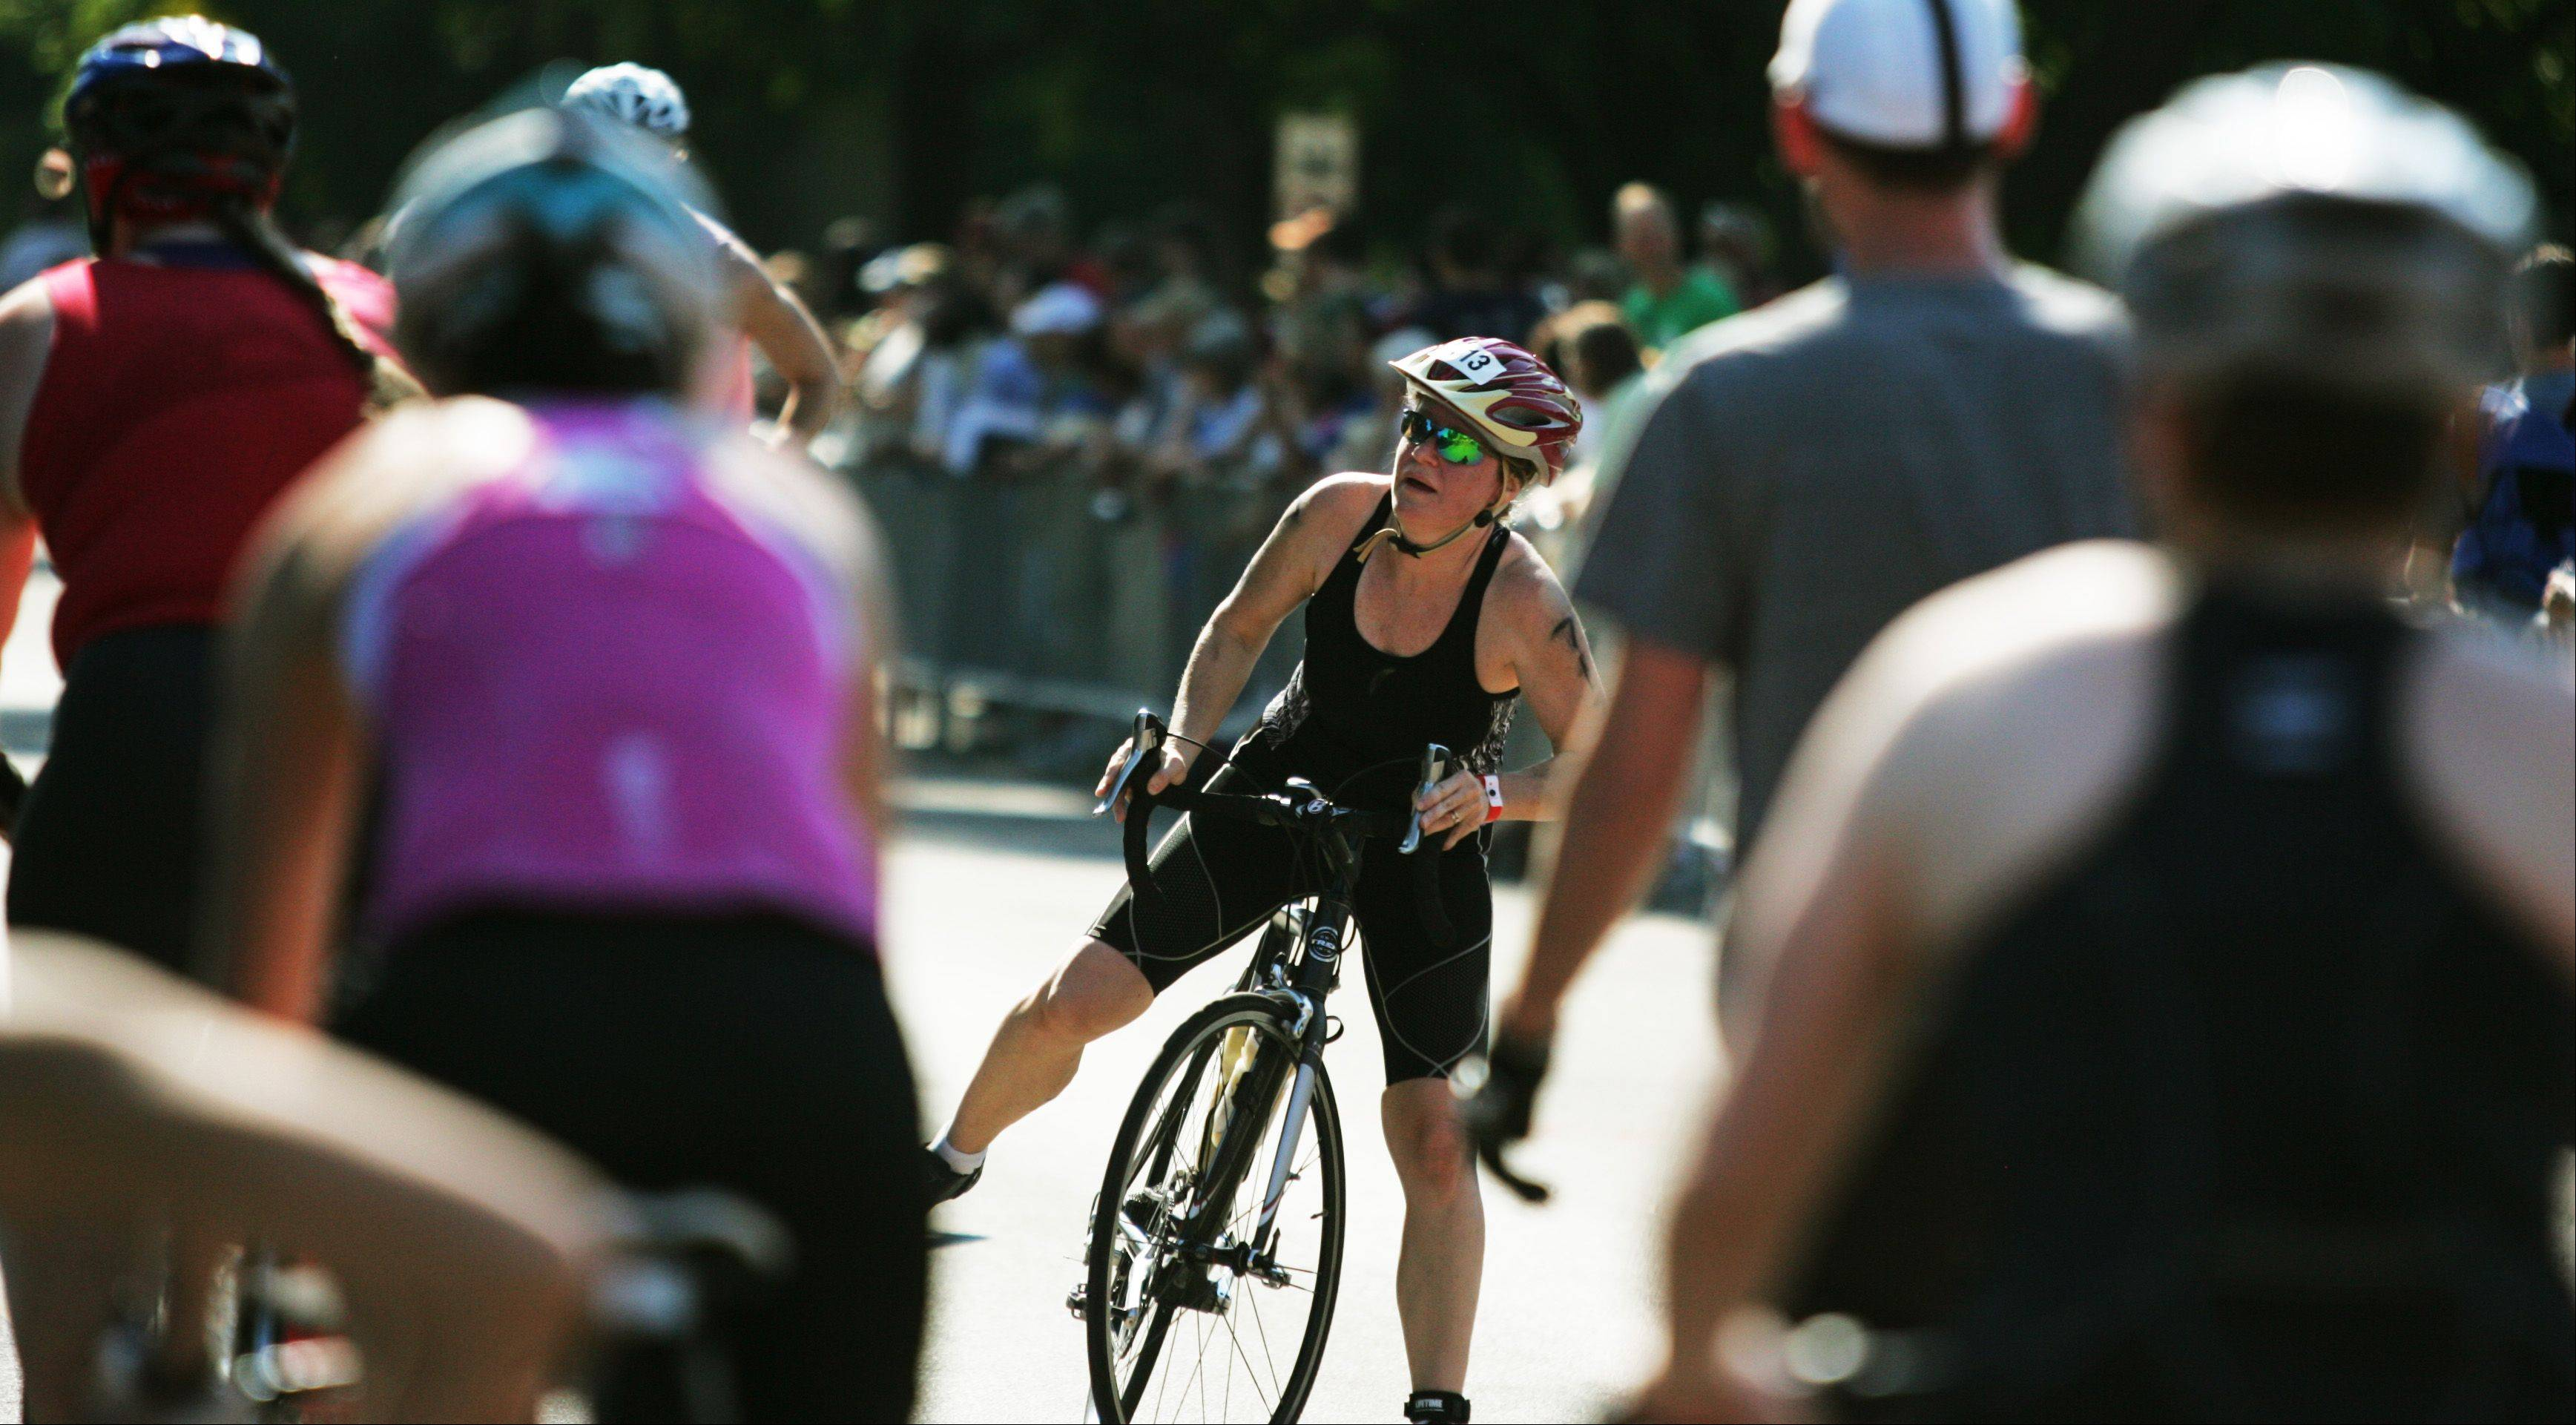 Thousands of woman participated in the SheROX Triathlon in Naperville. The event featured a .75-kilometer swim, 22.8-kilometer bike ride and 5-kilometer run.